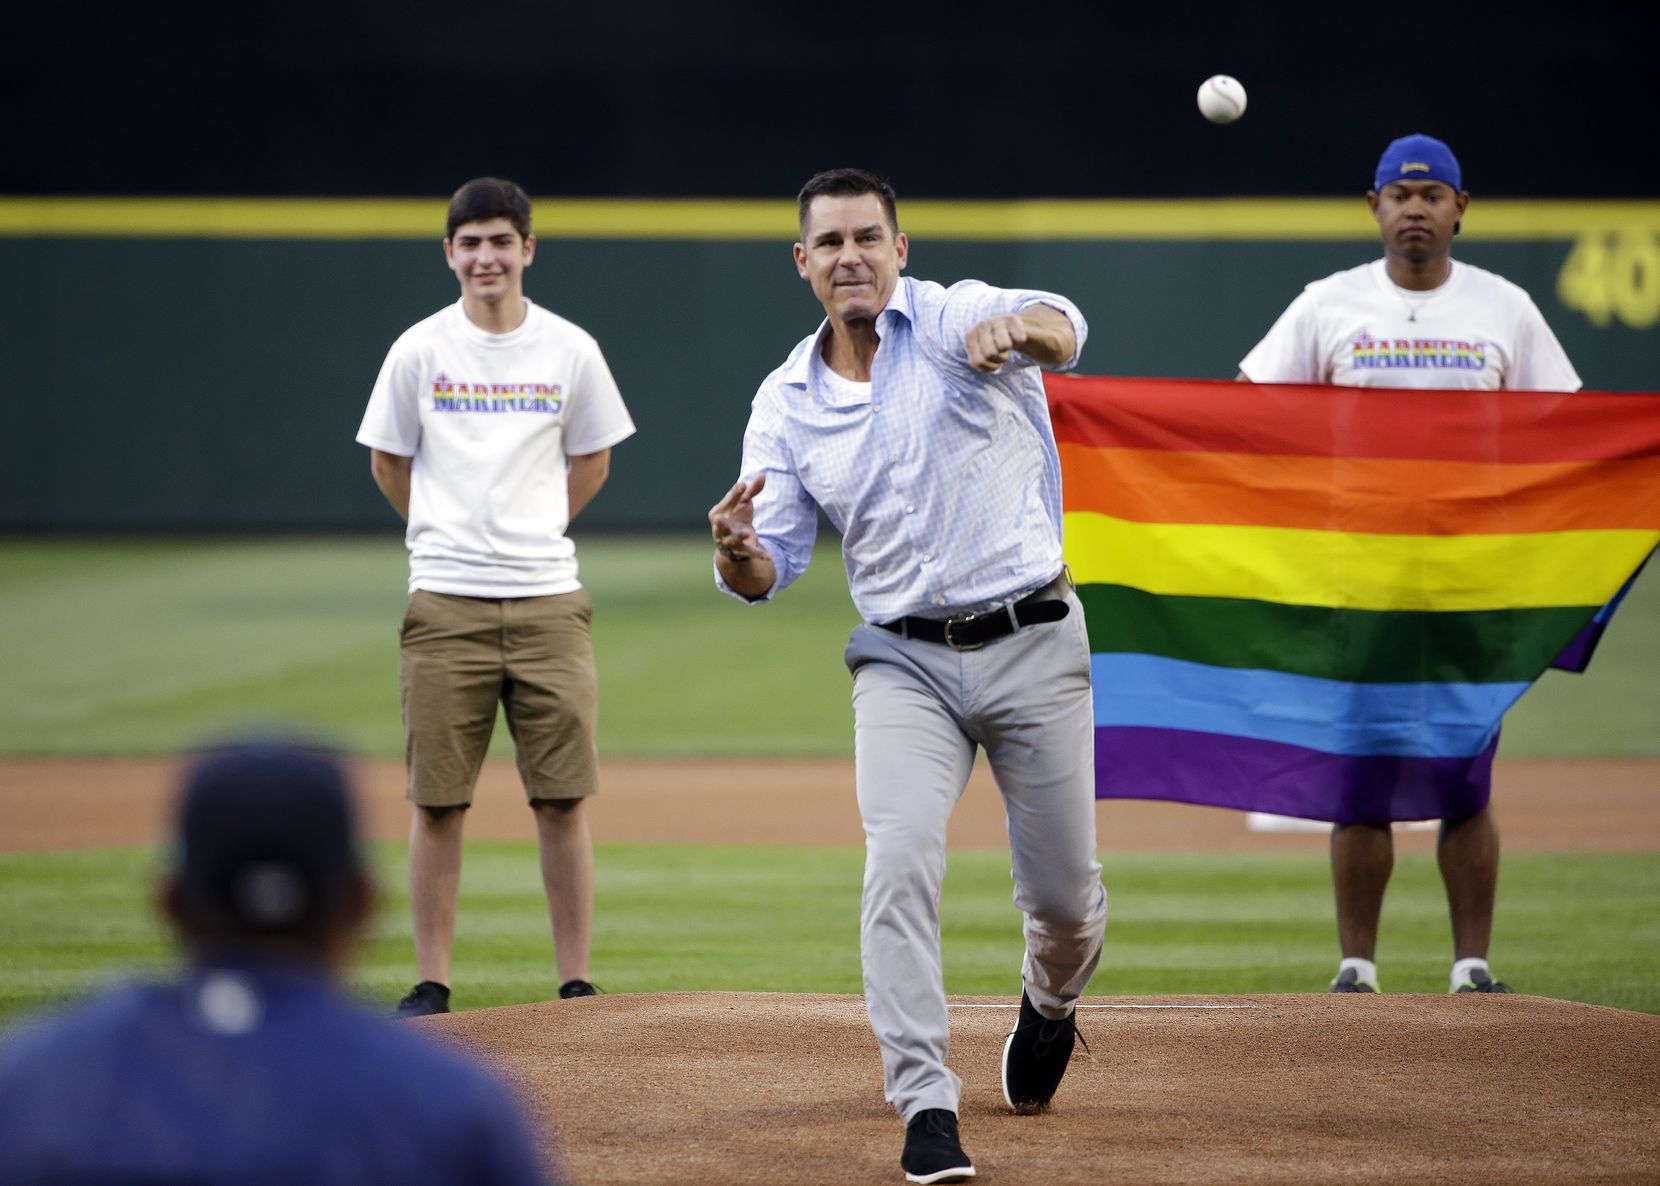 Billy Bean, Major League Baseball vice president of Social Responsibility & Inclusion, throws out the ceremonial first pitch to Seattle Mariners' Felix Hernandez before a baseball game between the Mariners and Milwaukee Brewers Friday, Aug. 19, 2016, in Seattle. The Mariners were celebrating LGBTQ Pride Night at the ballpark.